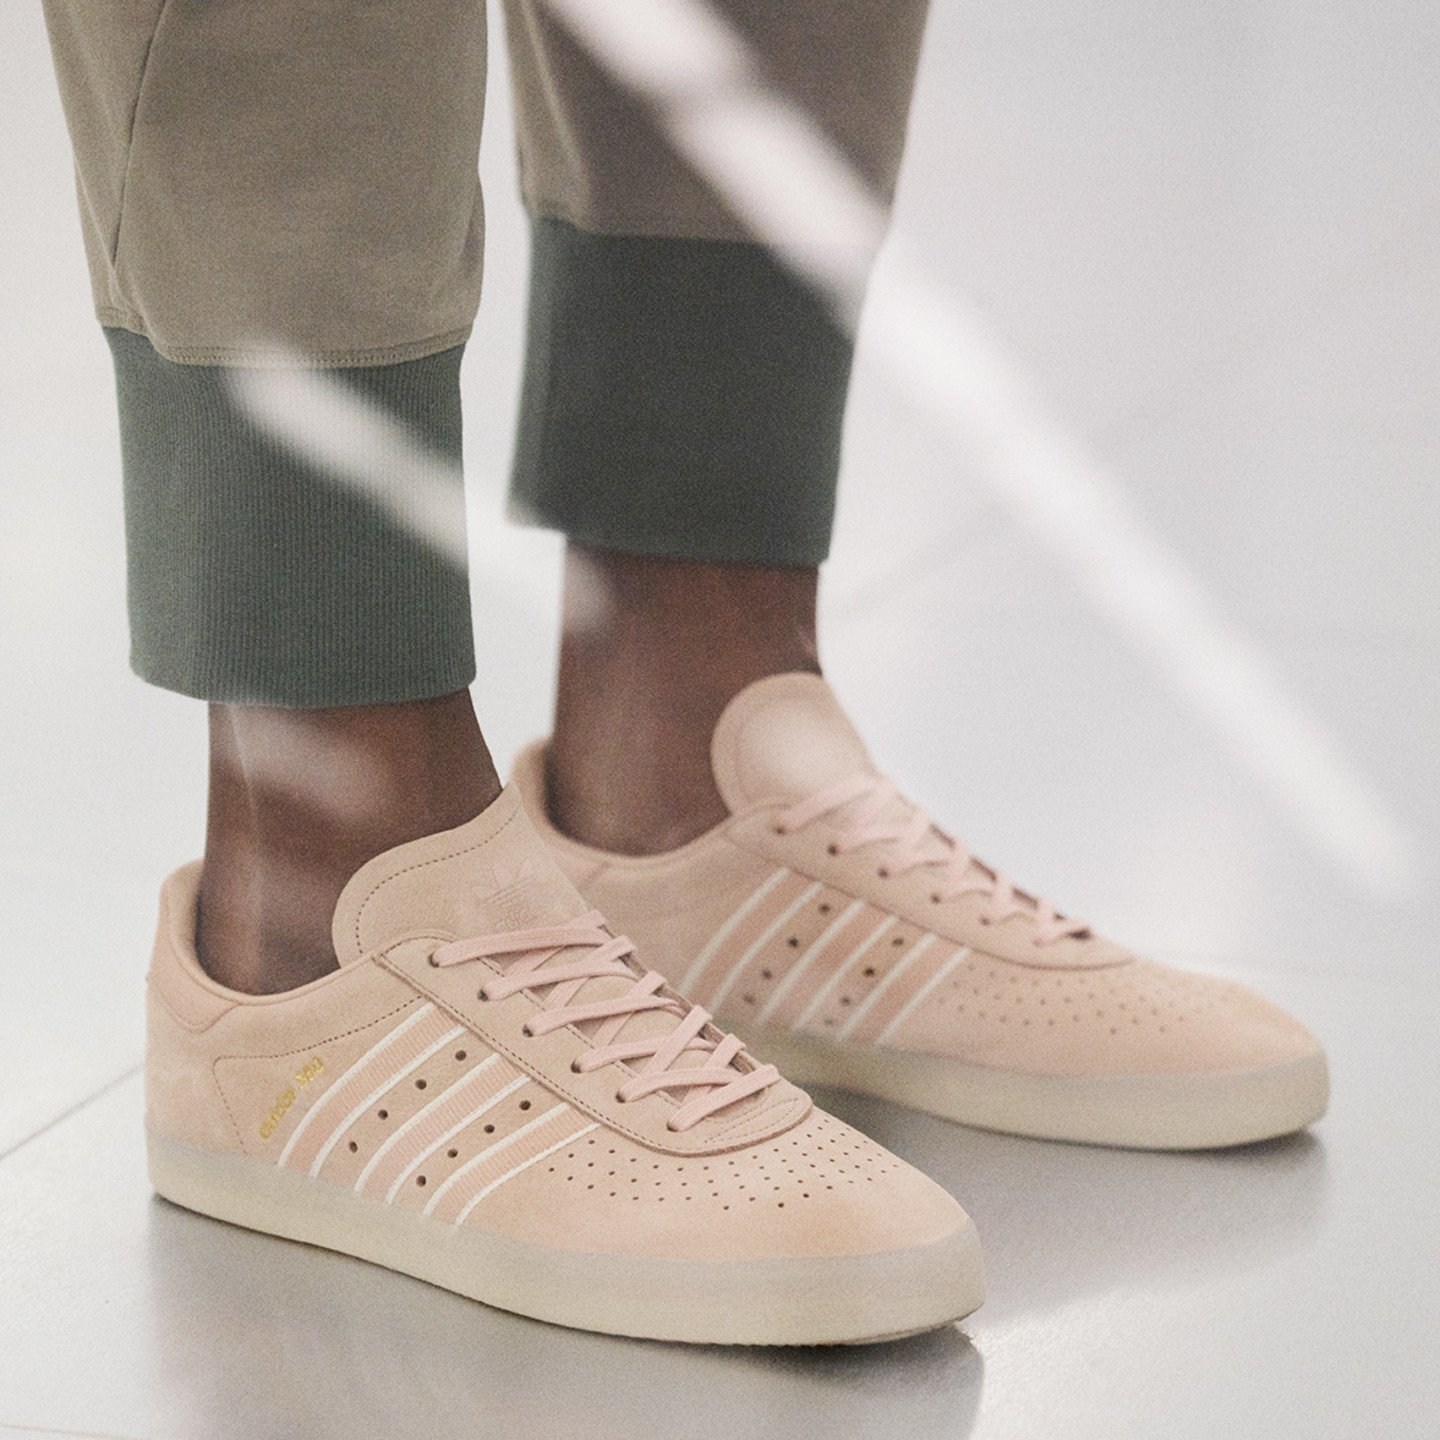 Adidas 350 x Oyster Holdings Ash Pearl / Chalk White / Gold Metallic DB1976